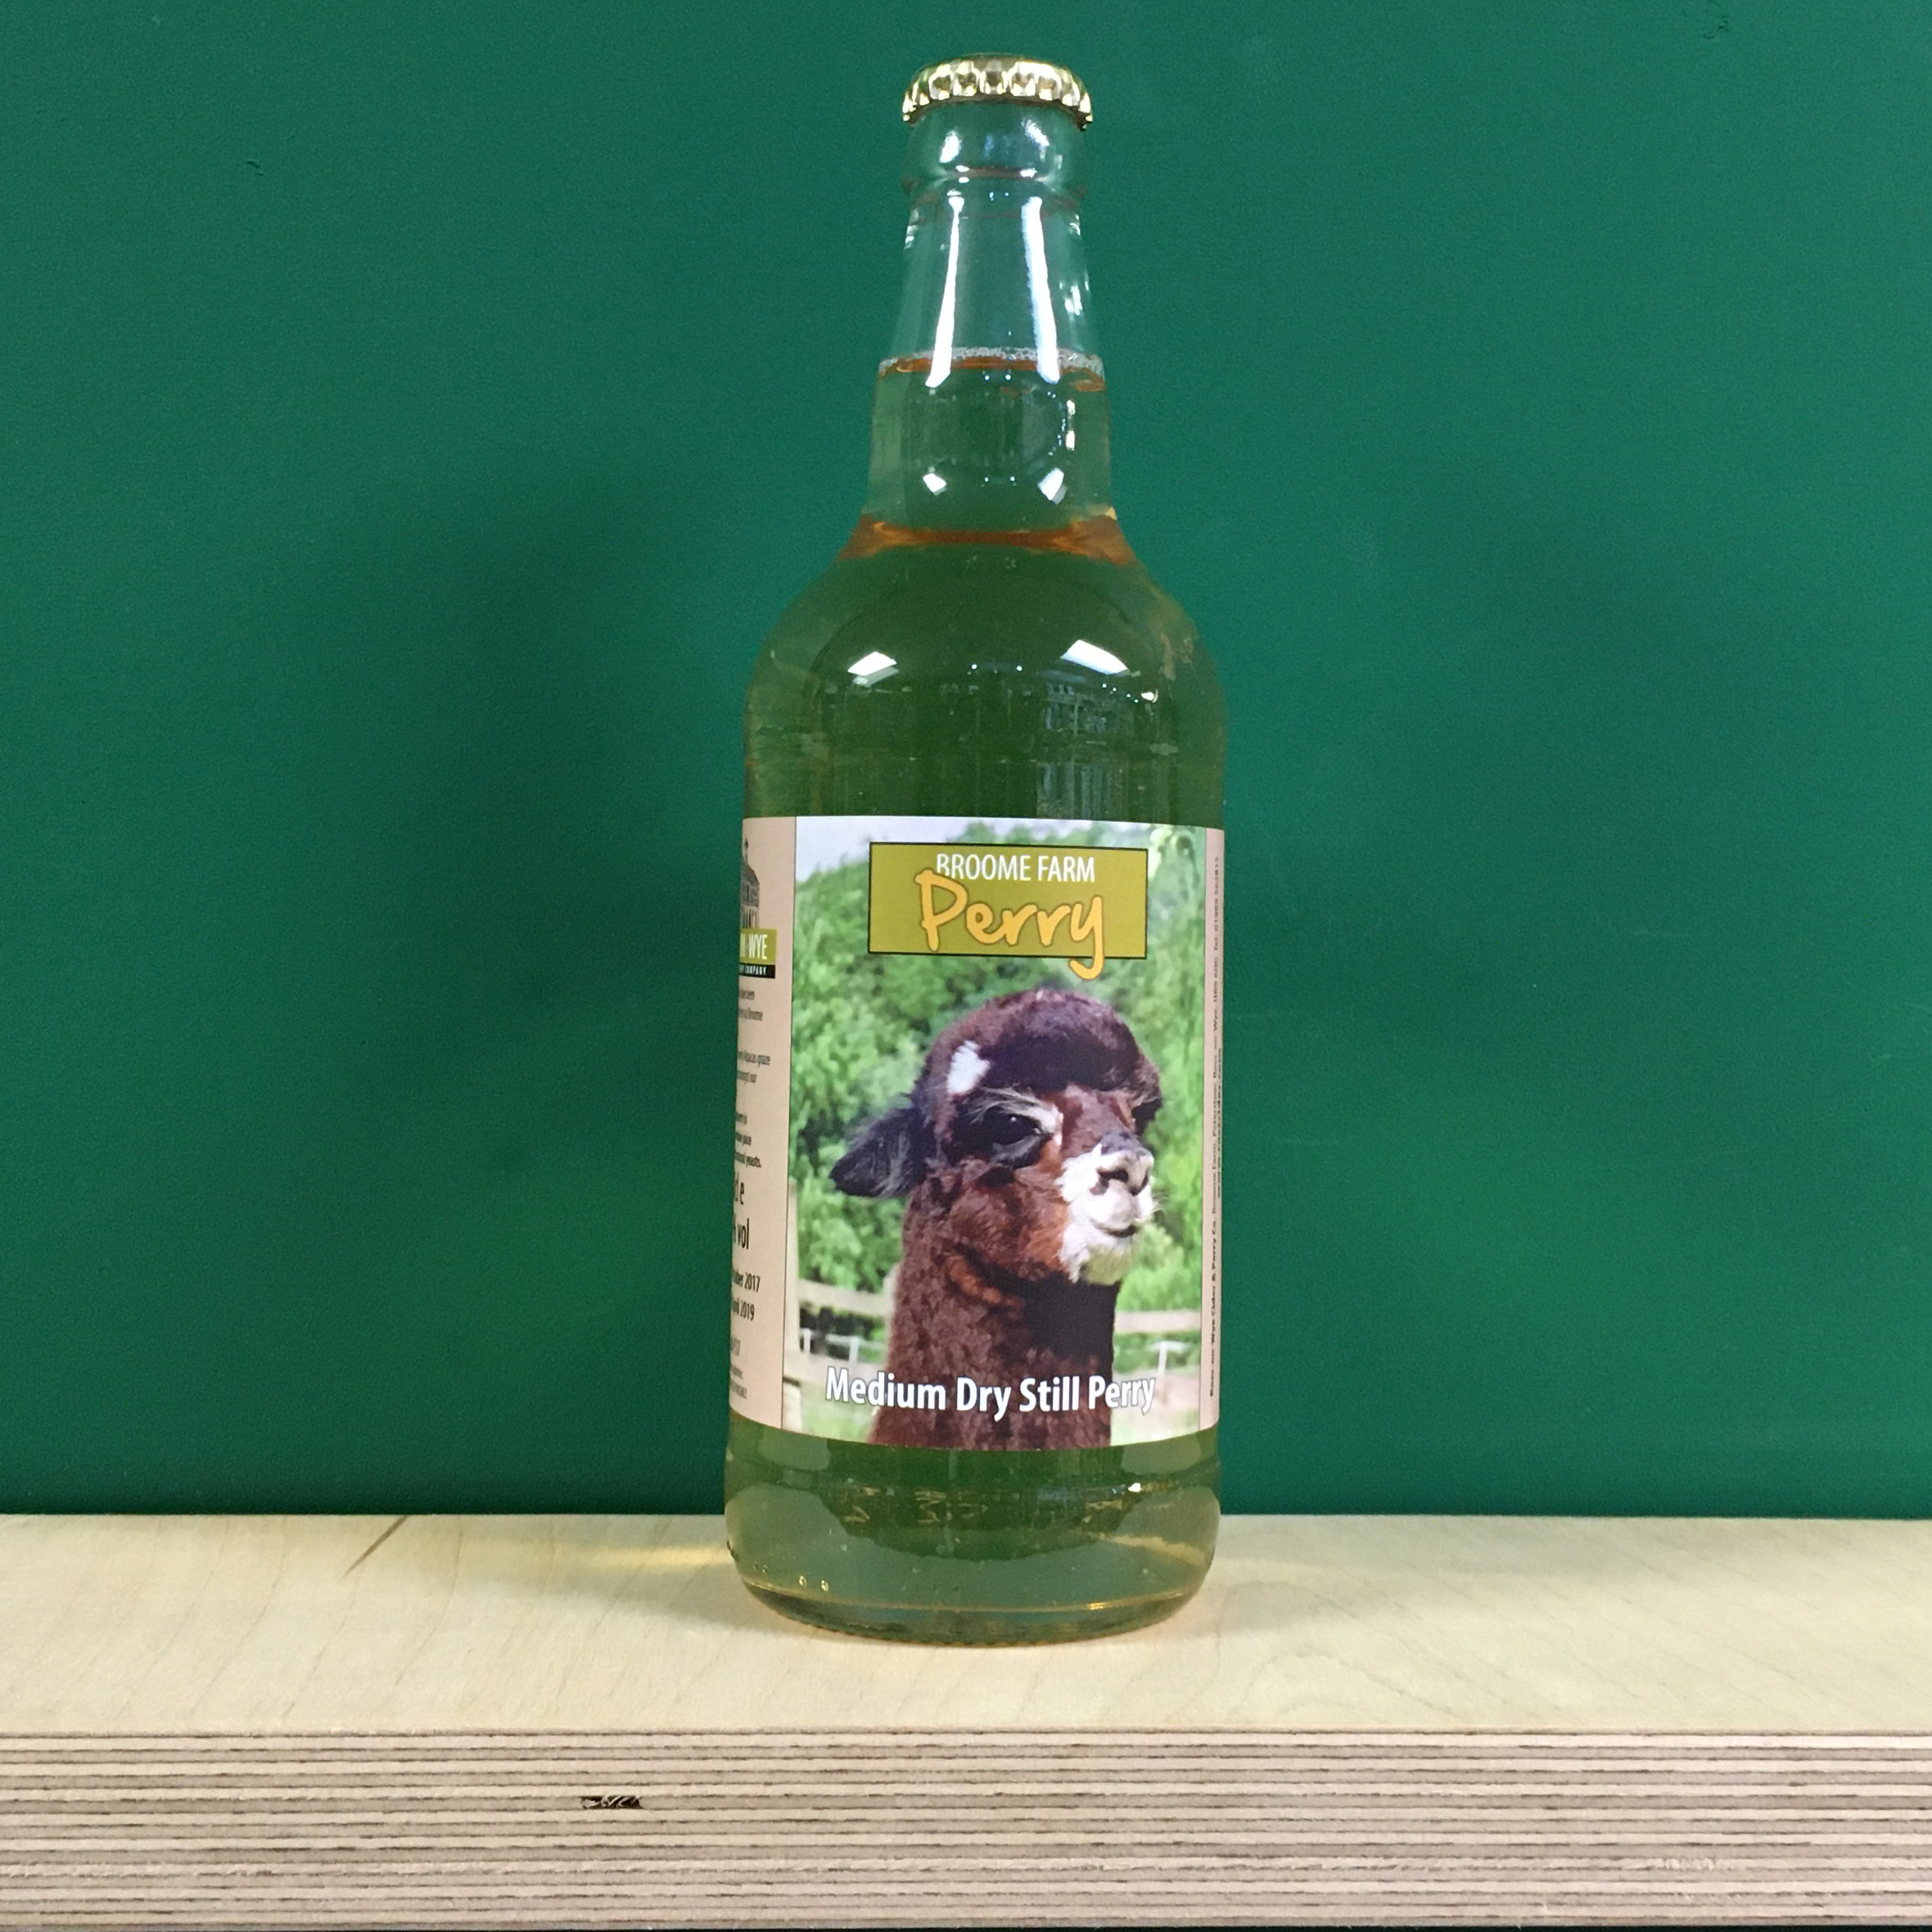 Ross On Wye Cider Broome Farm Perry